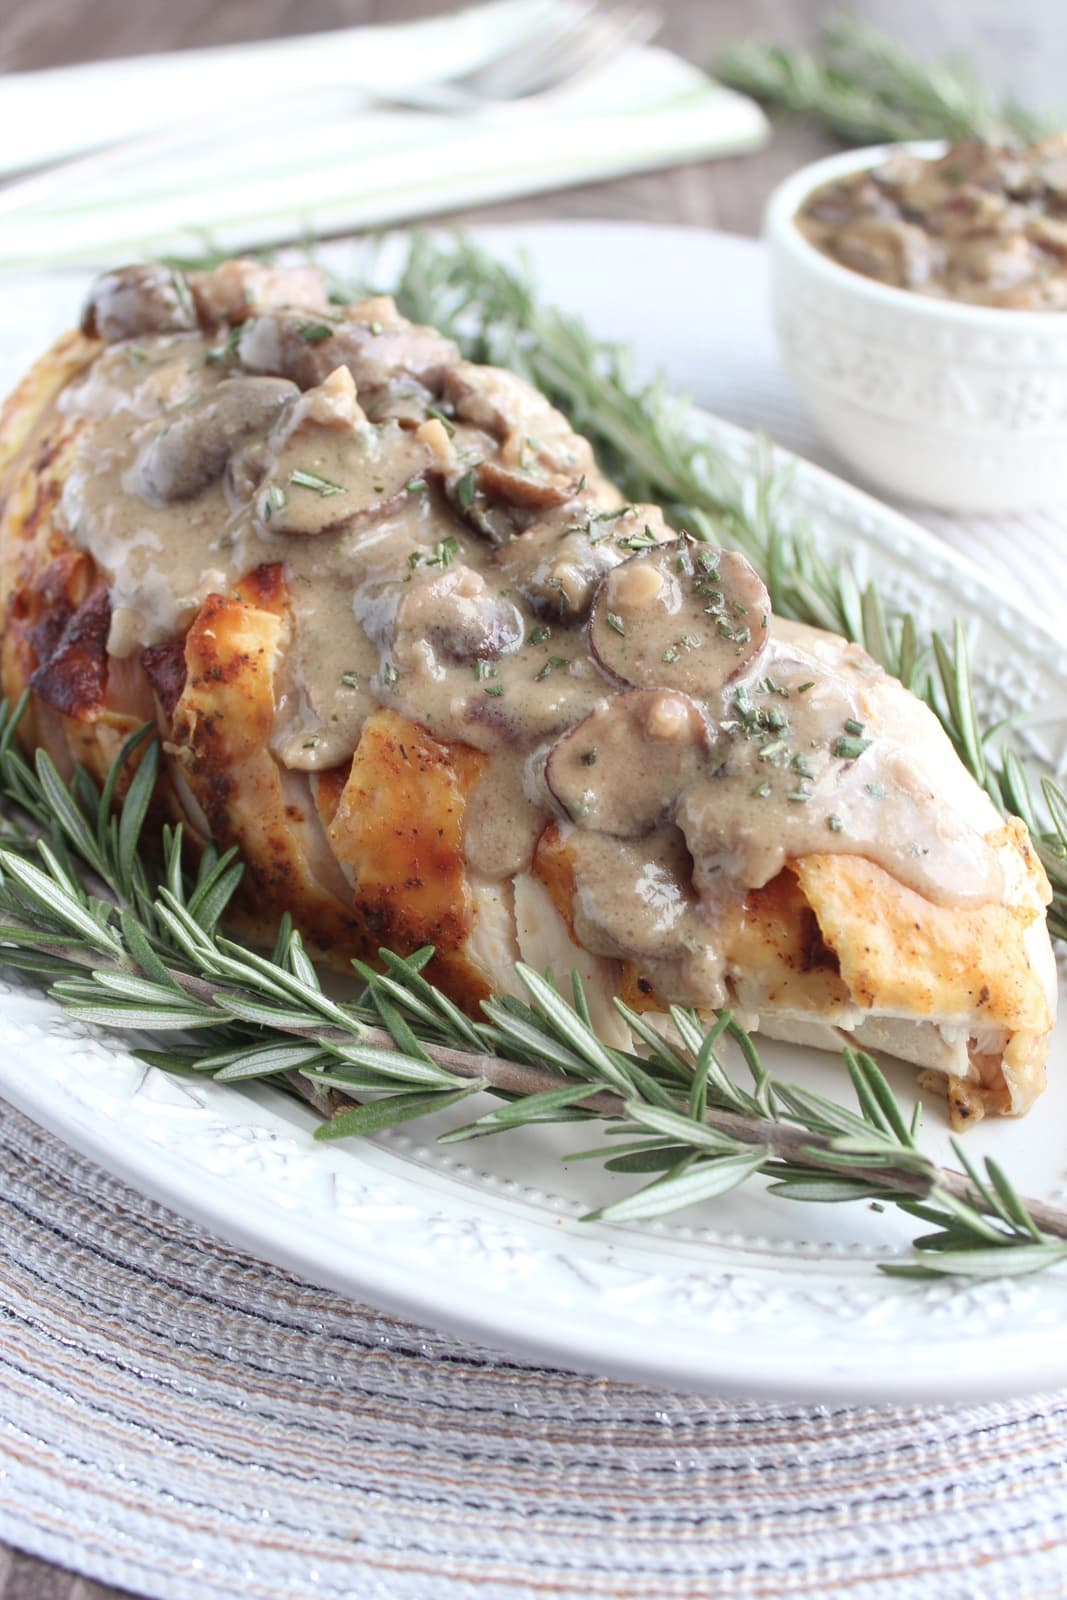 ... gravy recipe that's perfect on top of sliced roasted turkey breast